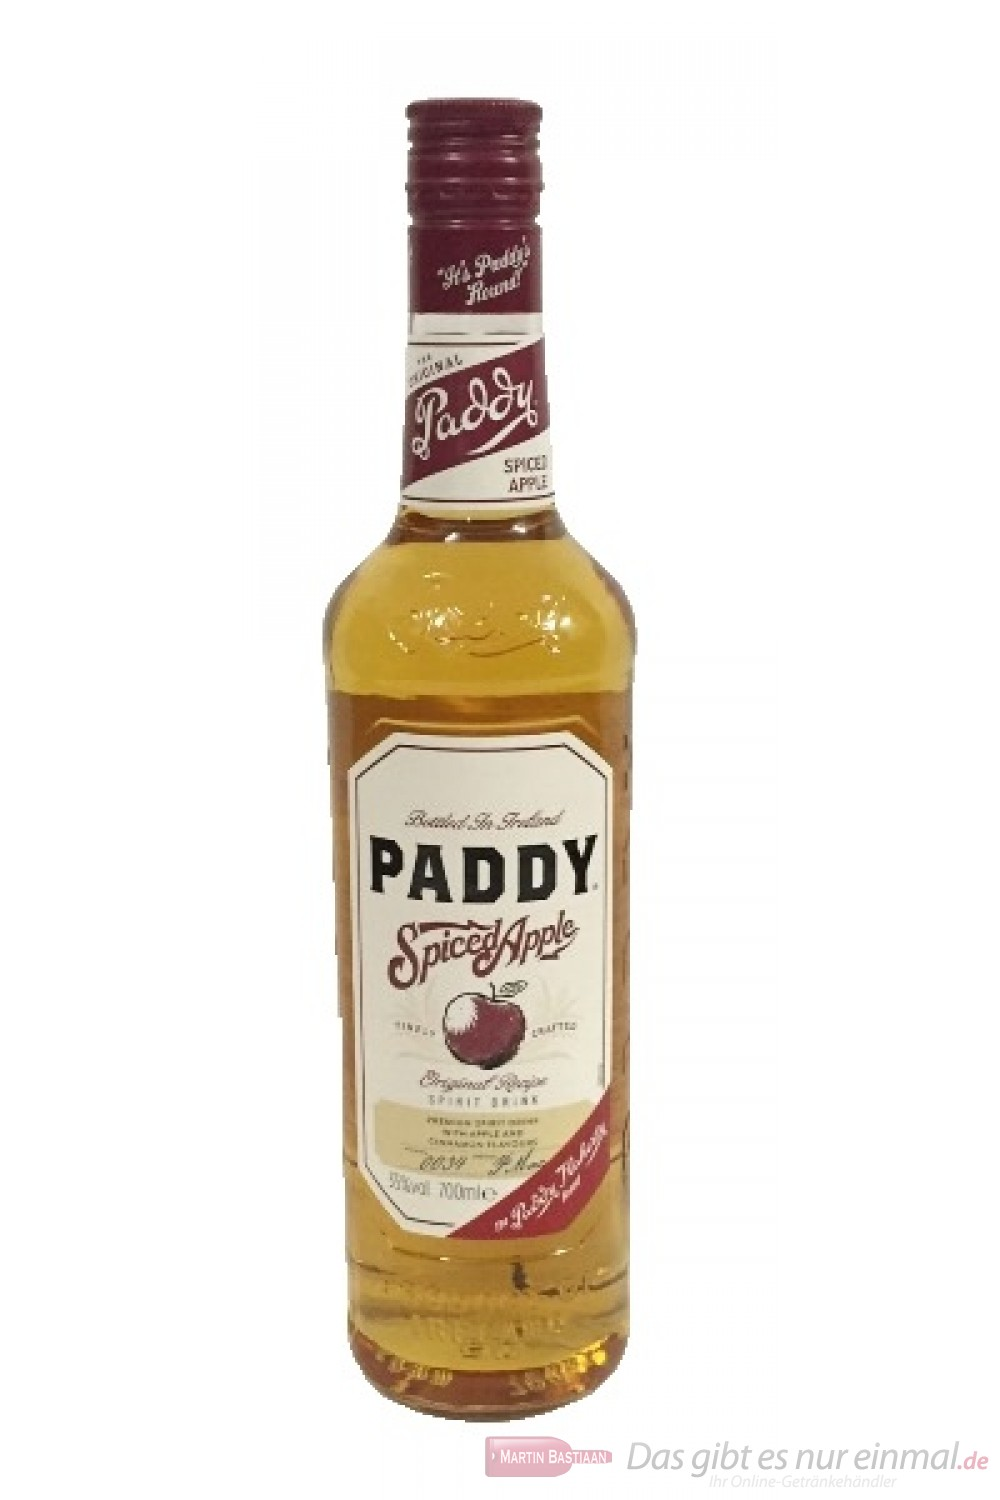 Paddy Spiced Apple